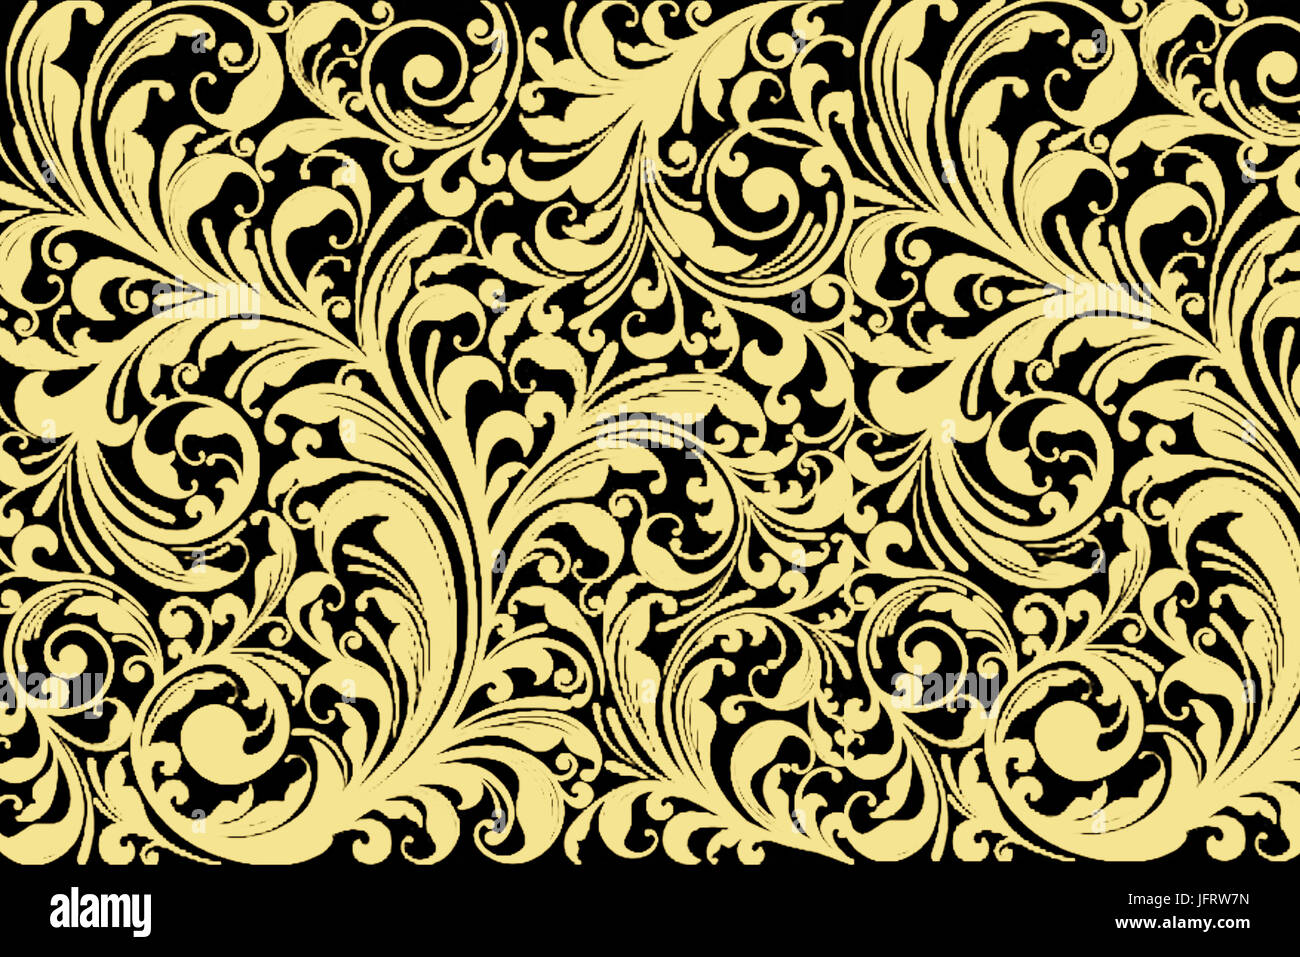 Vintage Floral Seamless Patten Classic Baroque Wallpaper Black And Gold Yellow